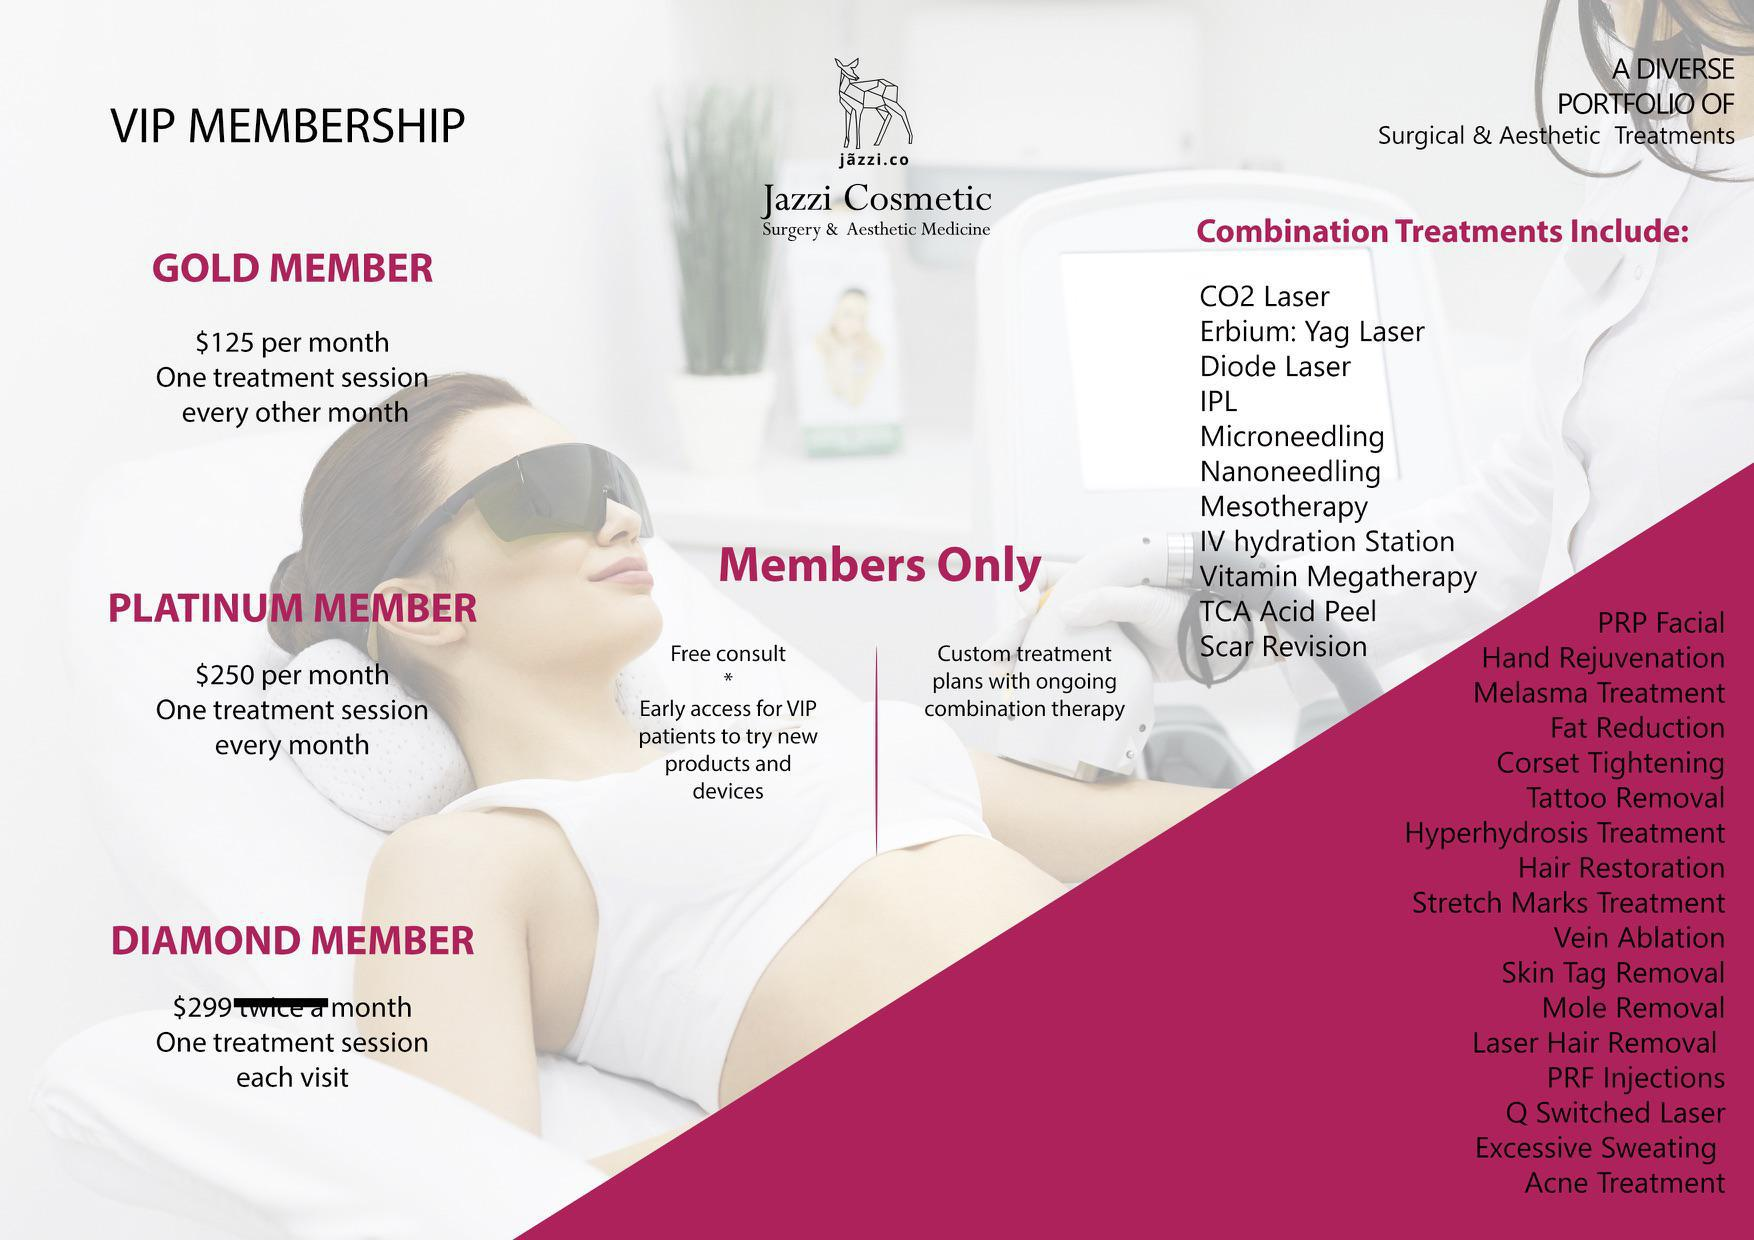 VIP MEMBERSHIP - Lexington, KY: Jazzi Cosmetic Surgery